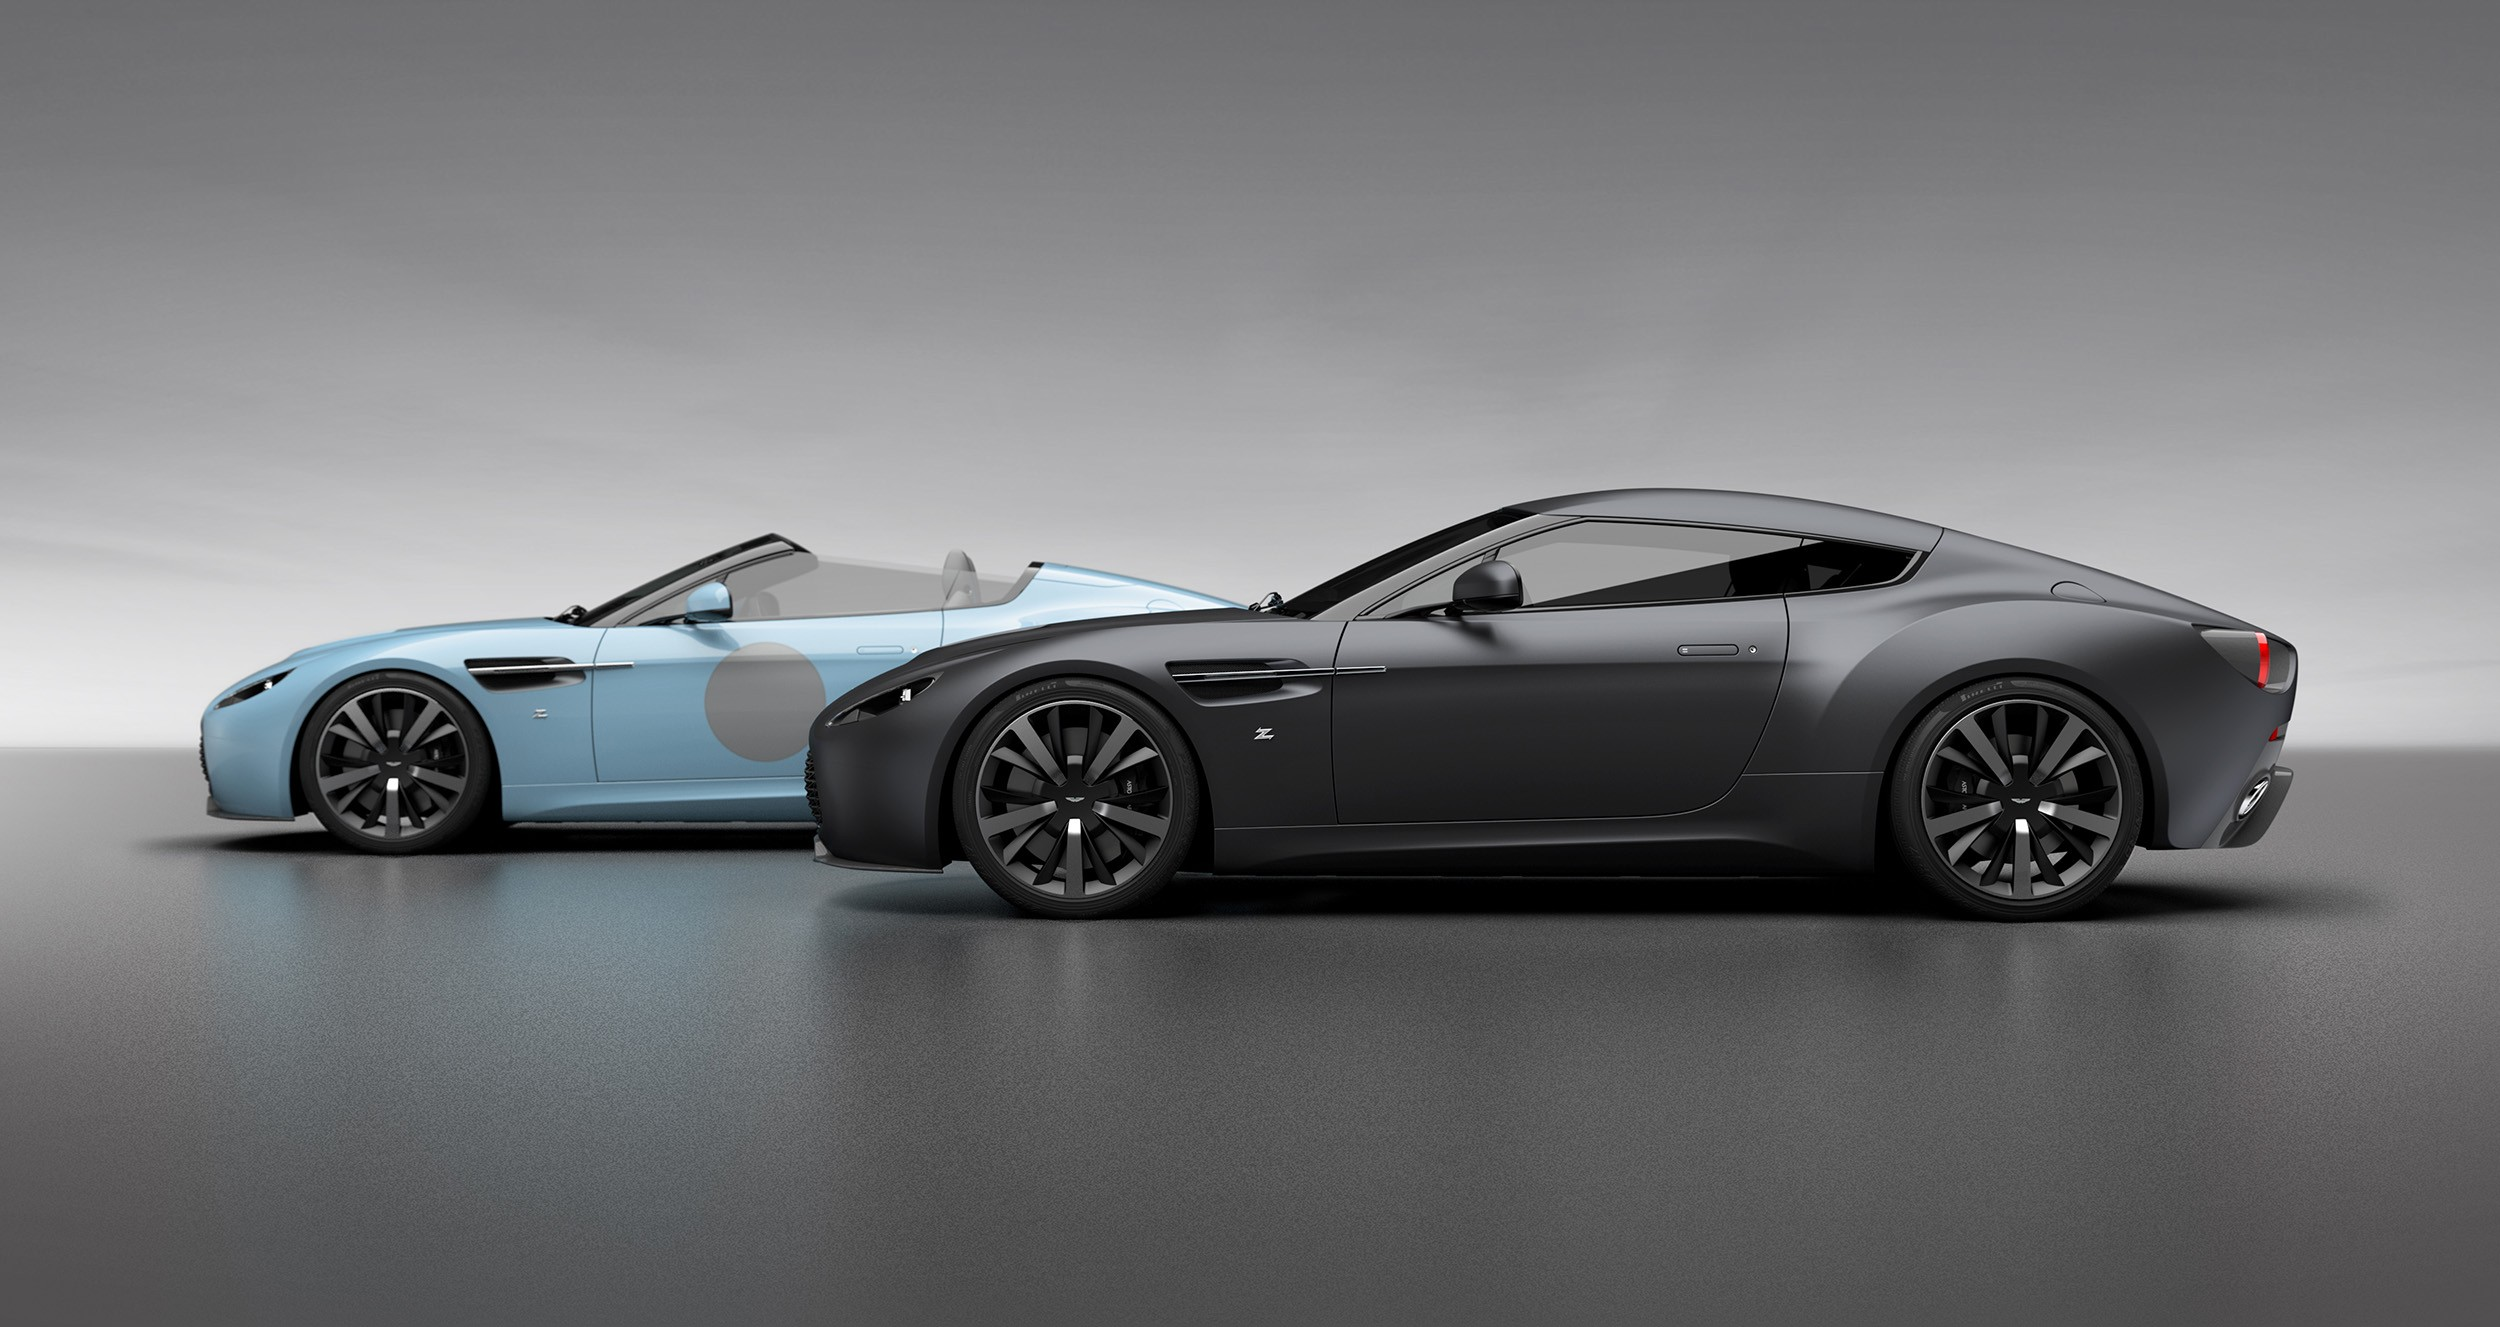 zagato celebrates 100th anniversary with aston martin v12 vantage twins autoevolution. Black Bedroom Furniture Sets. Home Design Ideas